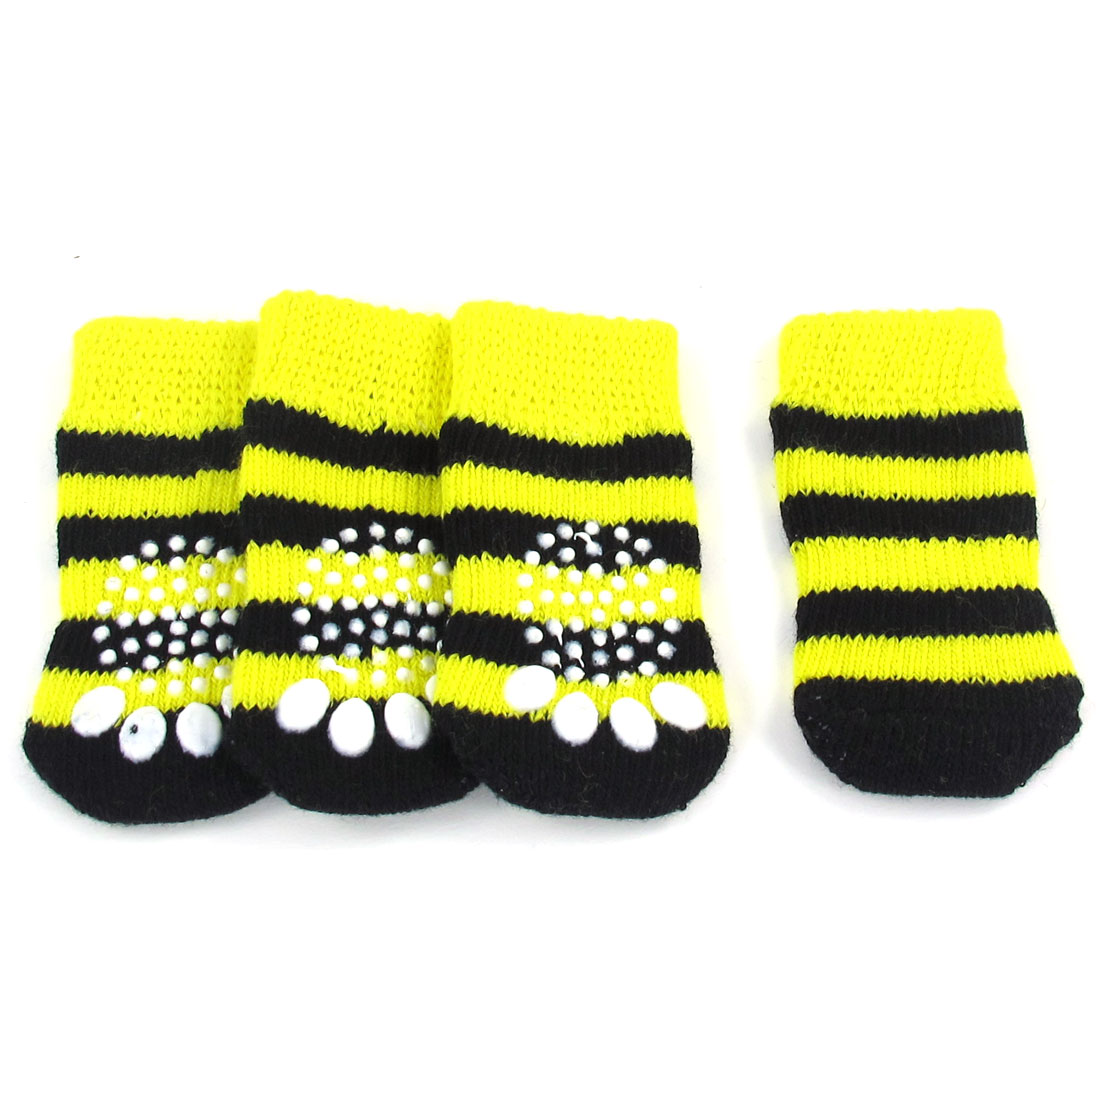 4 Pcs Stripe Paw Pattern Stretchy Pet Dog Doggie Puppy Socks Yellow Black Size S